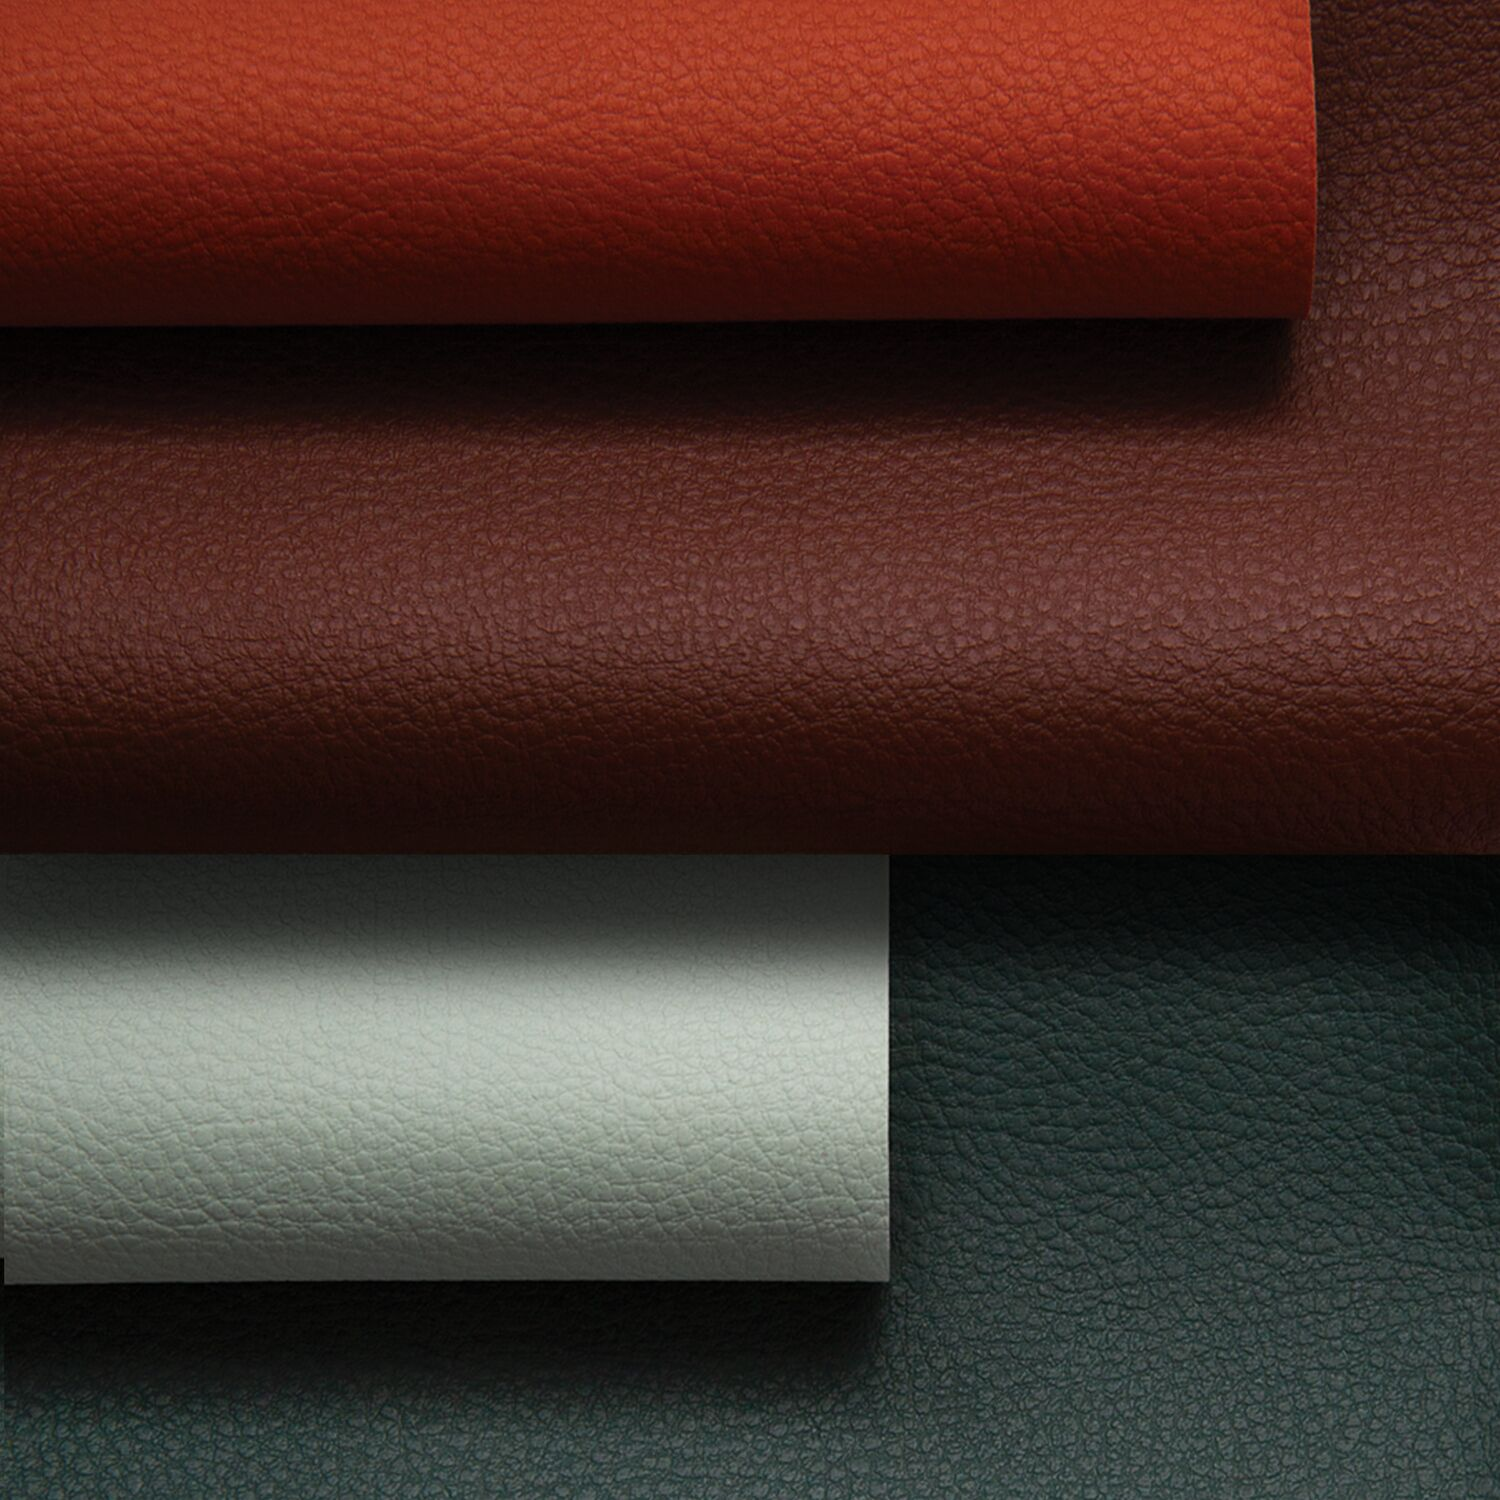 "Luum Textiles on Twitter: ""Engineered with the environment at heart, both  built and natural, Top Coat is a performance faux leather made from 100%  silicone. https://t.co/x6BFzK25sh #LuumTextiles #textiledesign…  https://t.co/r1ek9am9vn"""